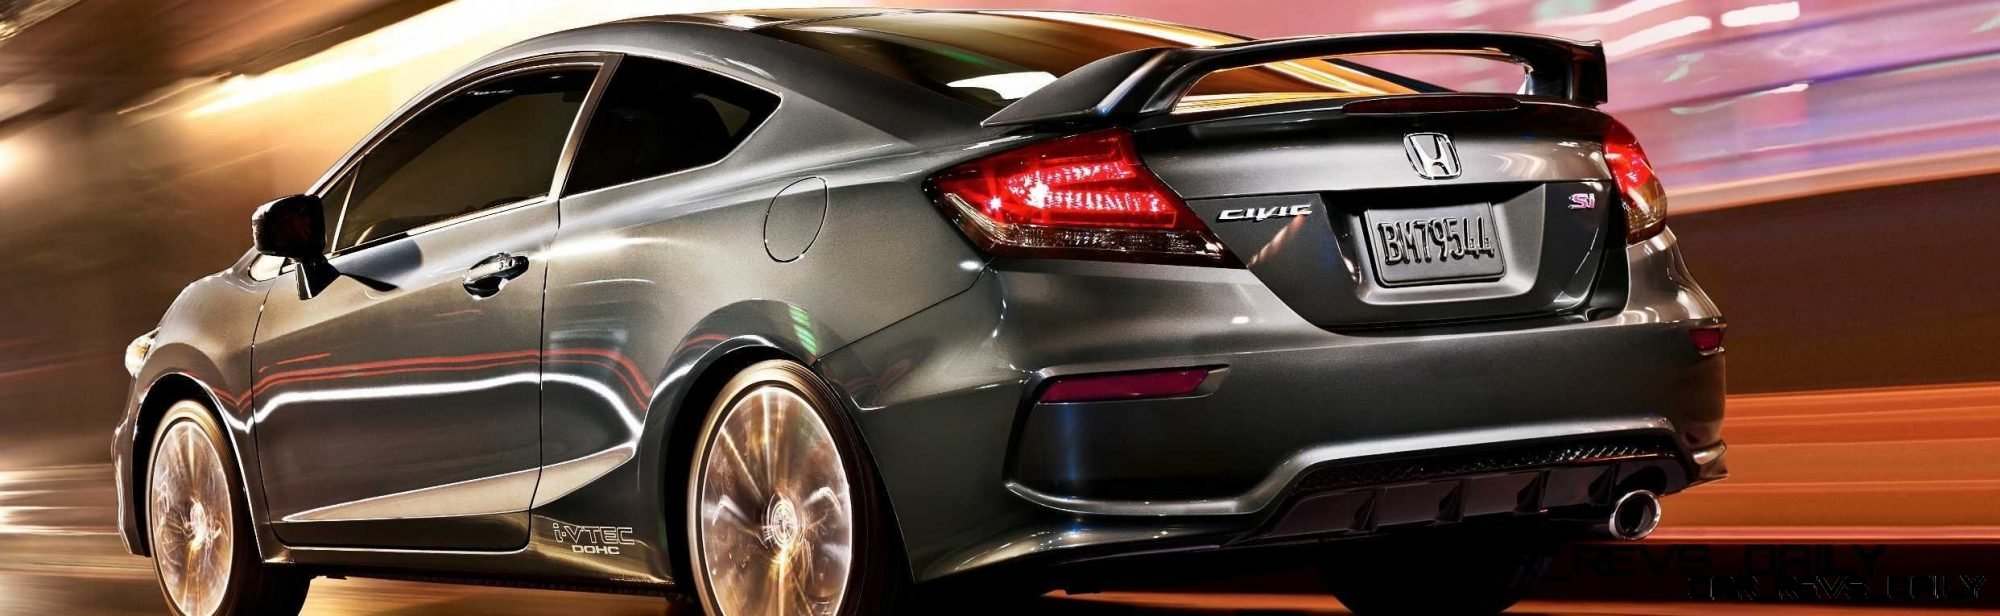 2014 civic si coupe first night sighting great looking leds. Black Bedroom Furniture Sets. Home Design Ideas